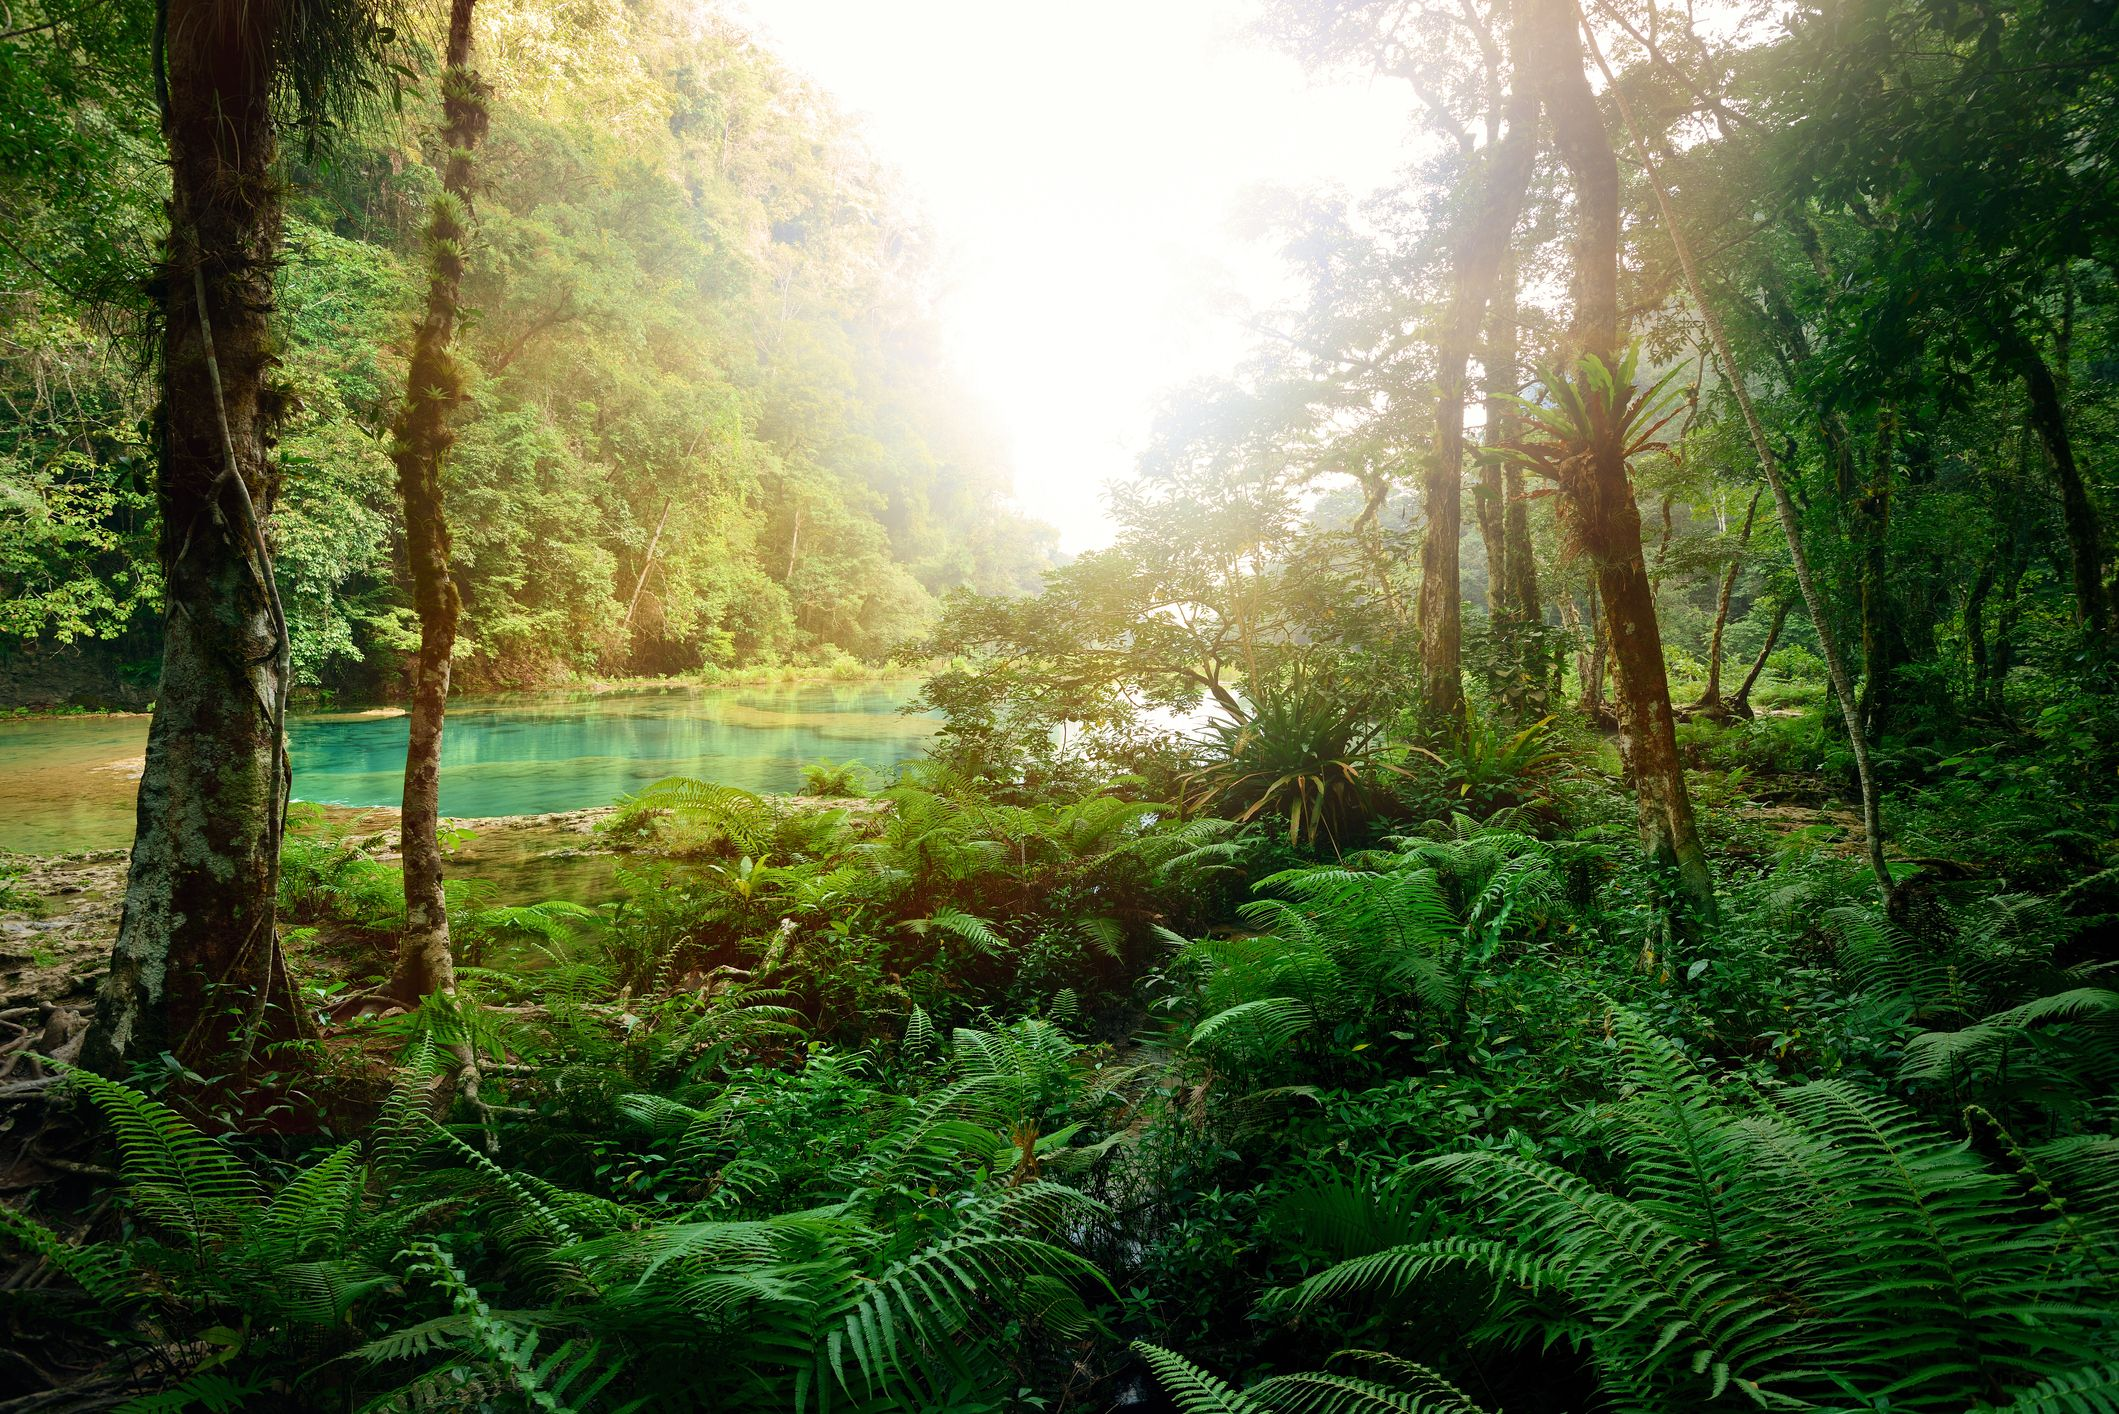 22 Little Things Anyone Can Do to Help Save the Rainforests